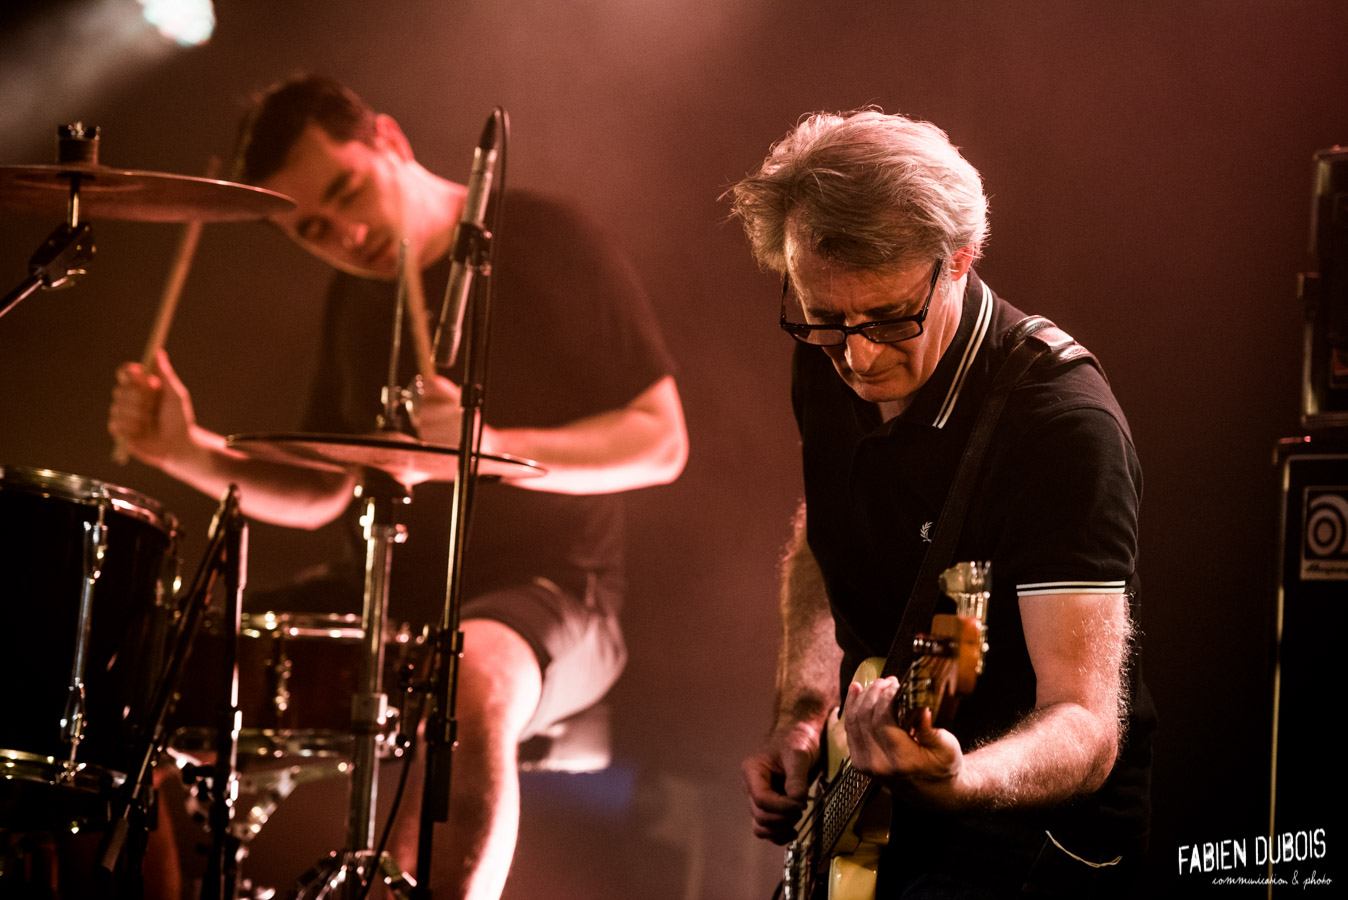 Photo Sugar & Tiger Cave à Musique Cavazik Mâcon 2018